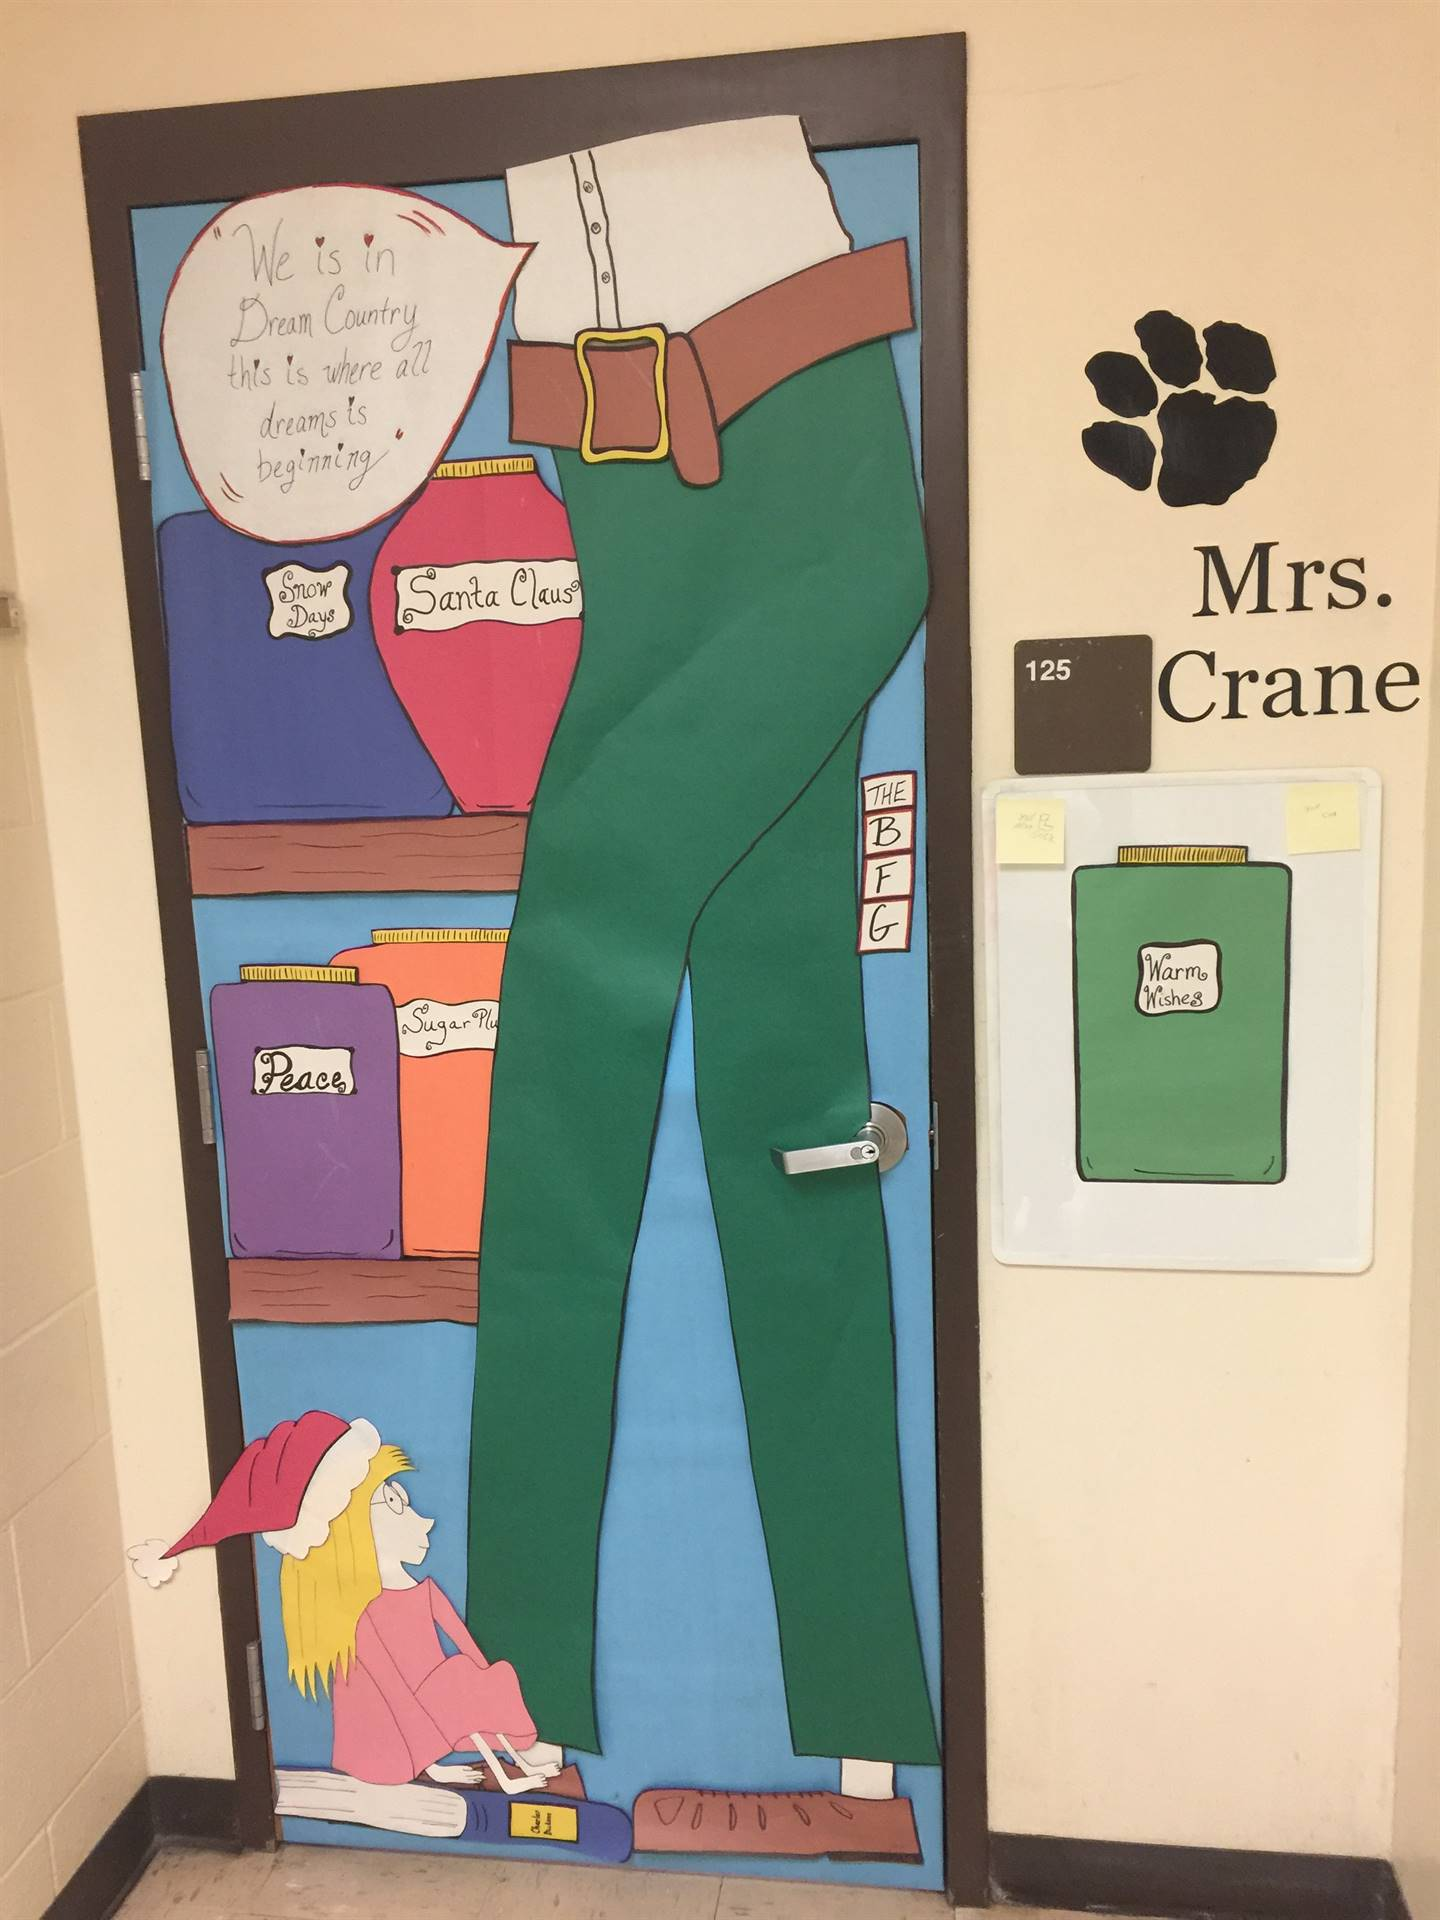 2nd Place Door!